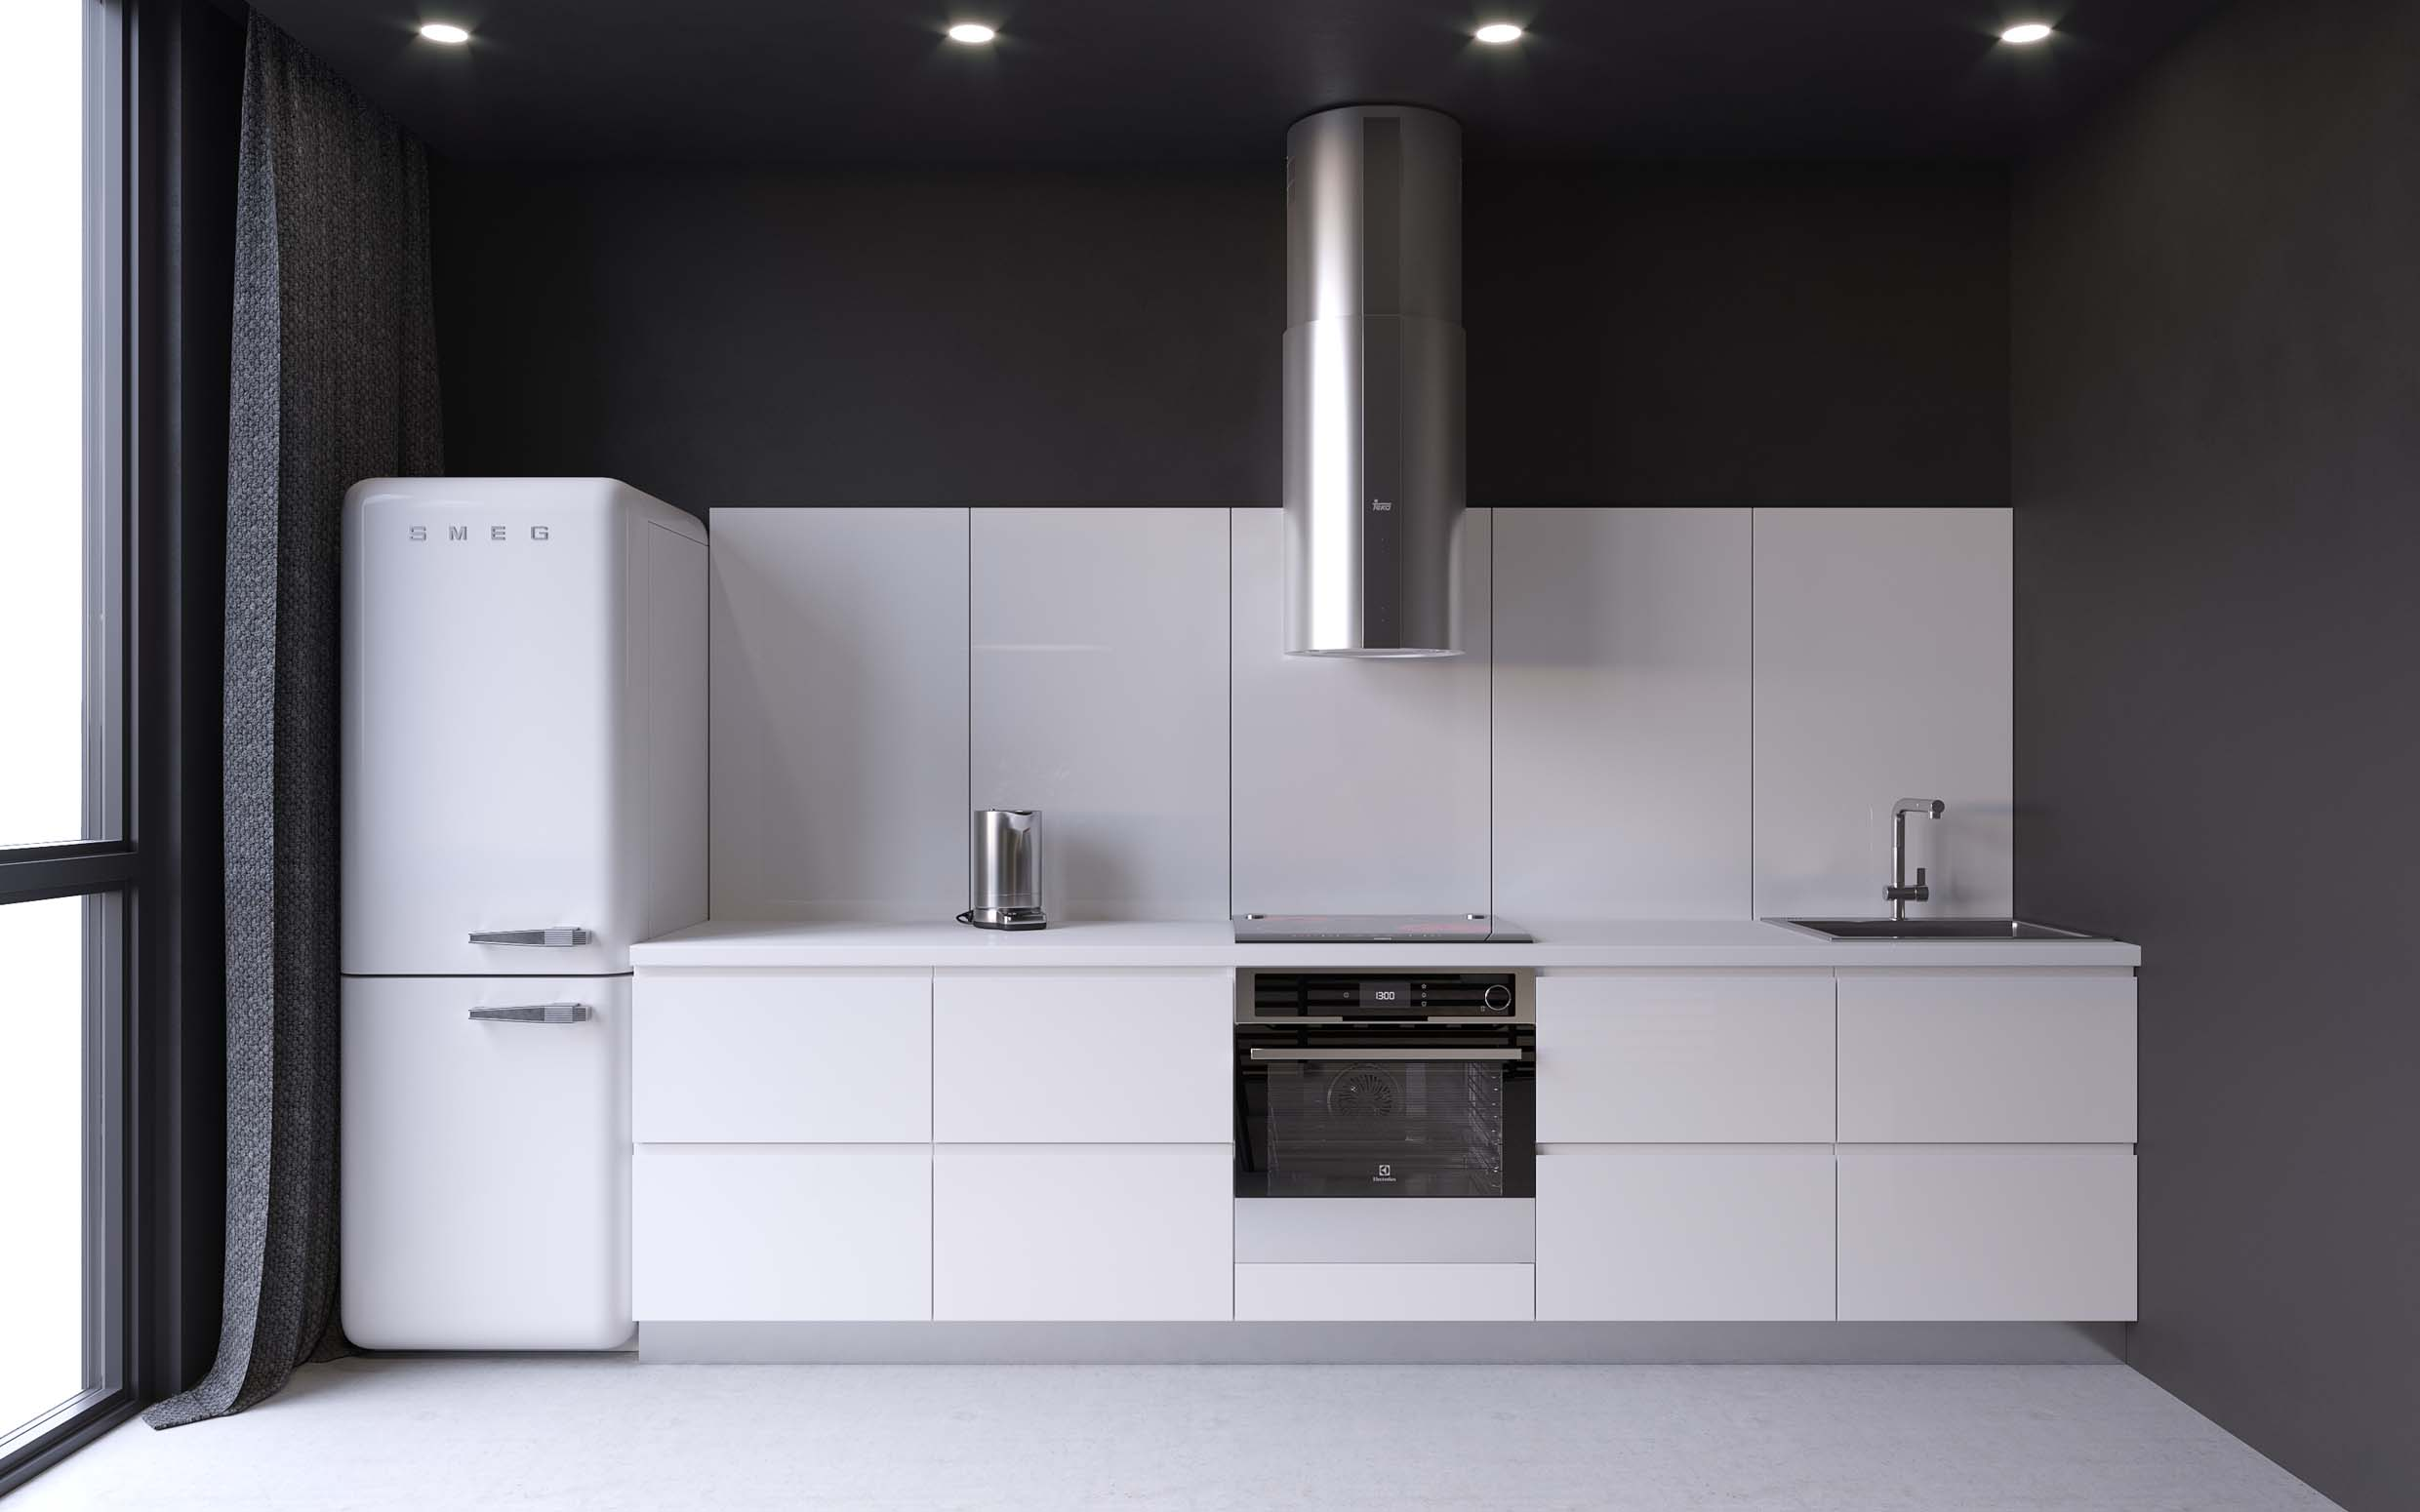 white kitchen designed in minimalist style